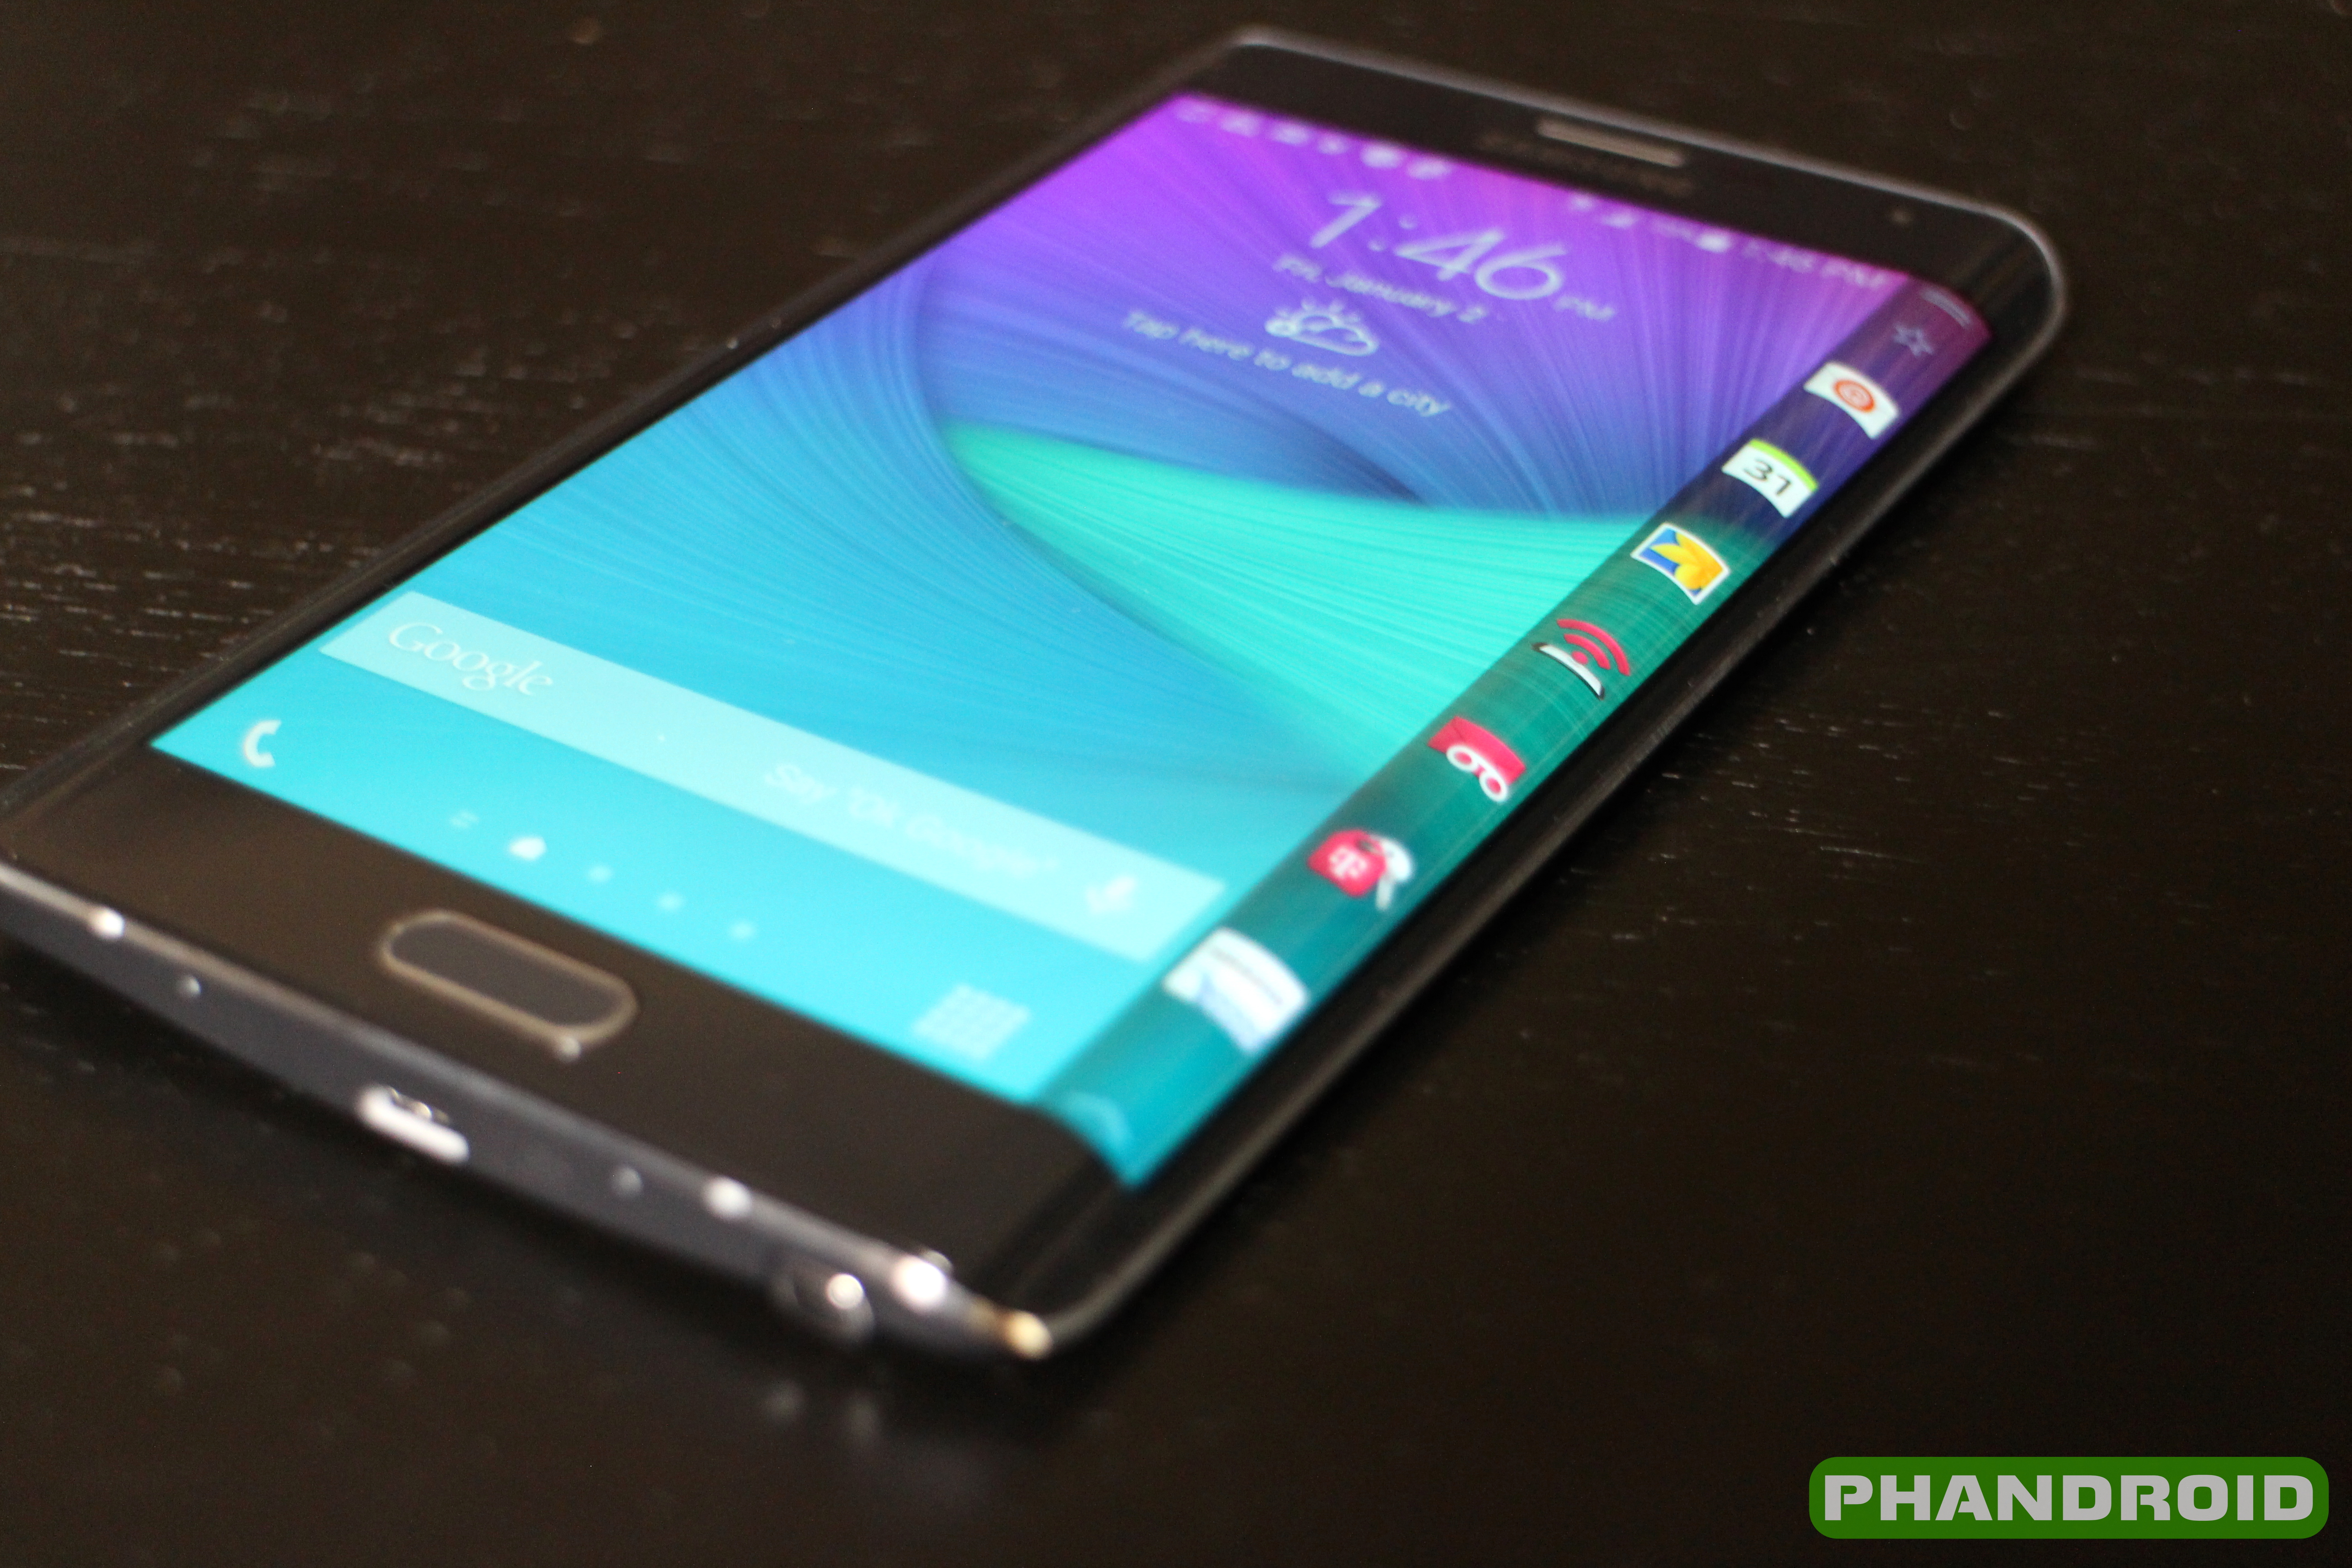 Marshmallow rolling out now to the Galaxy Note Edge and S5 Sport on